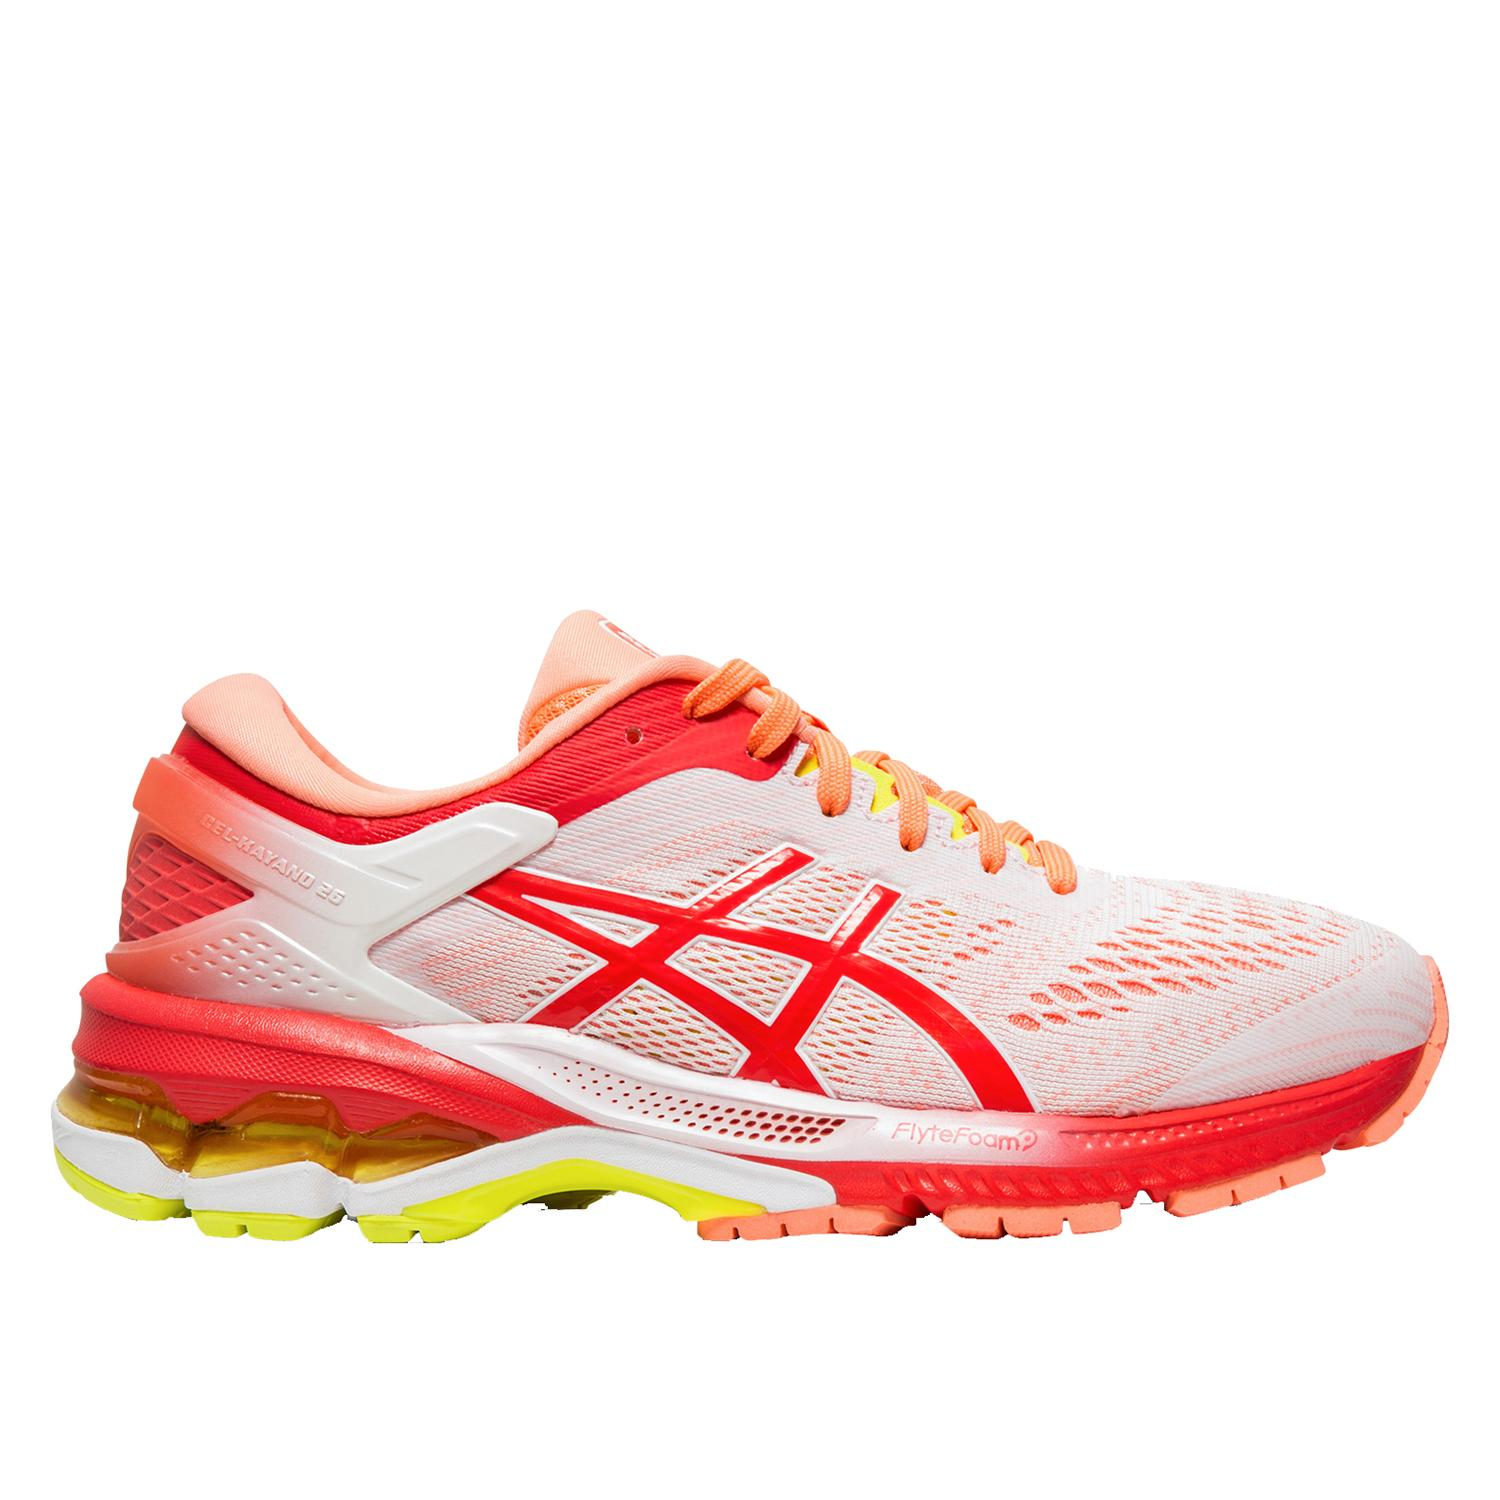 89f1045f0 ASICS GEL-Kayano 26 Kai Women's Running Shoe